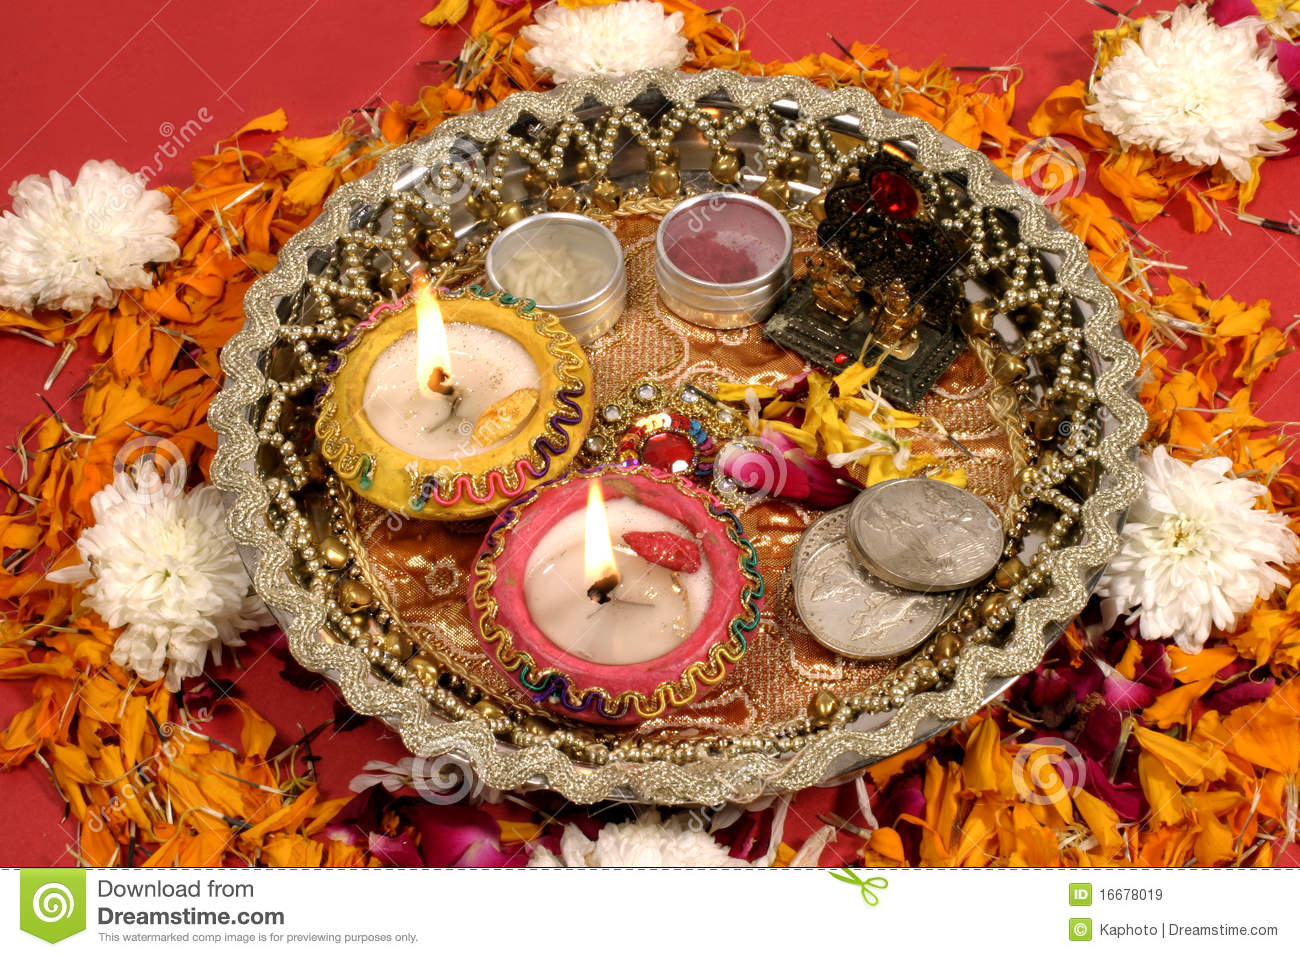 Diwali puja, traditional Indian festival